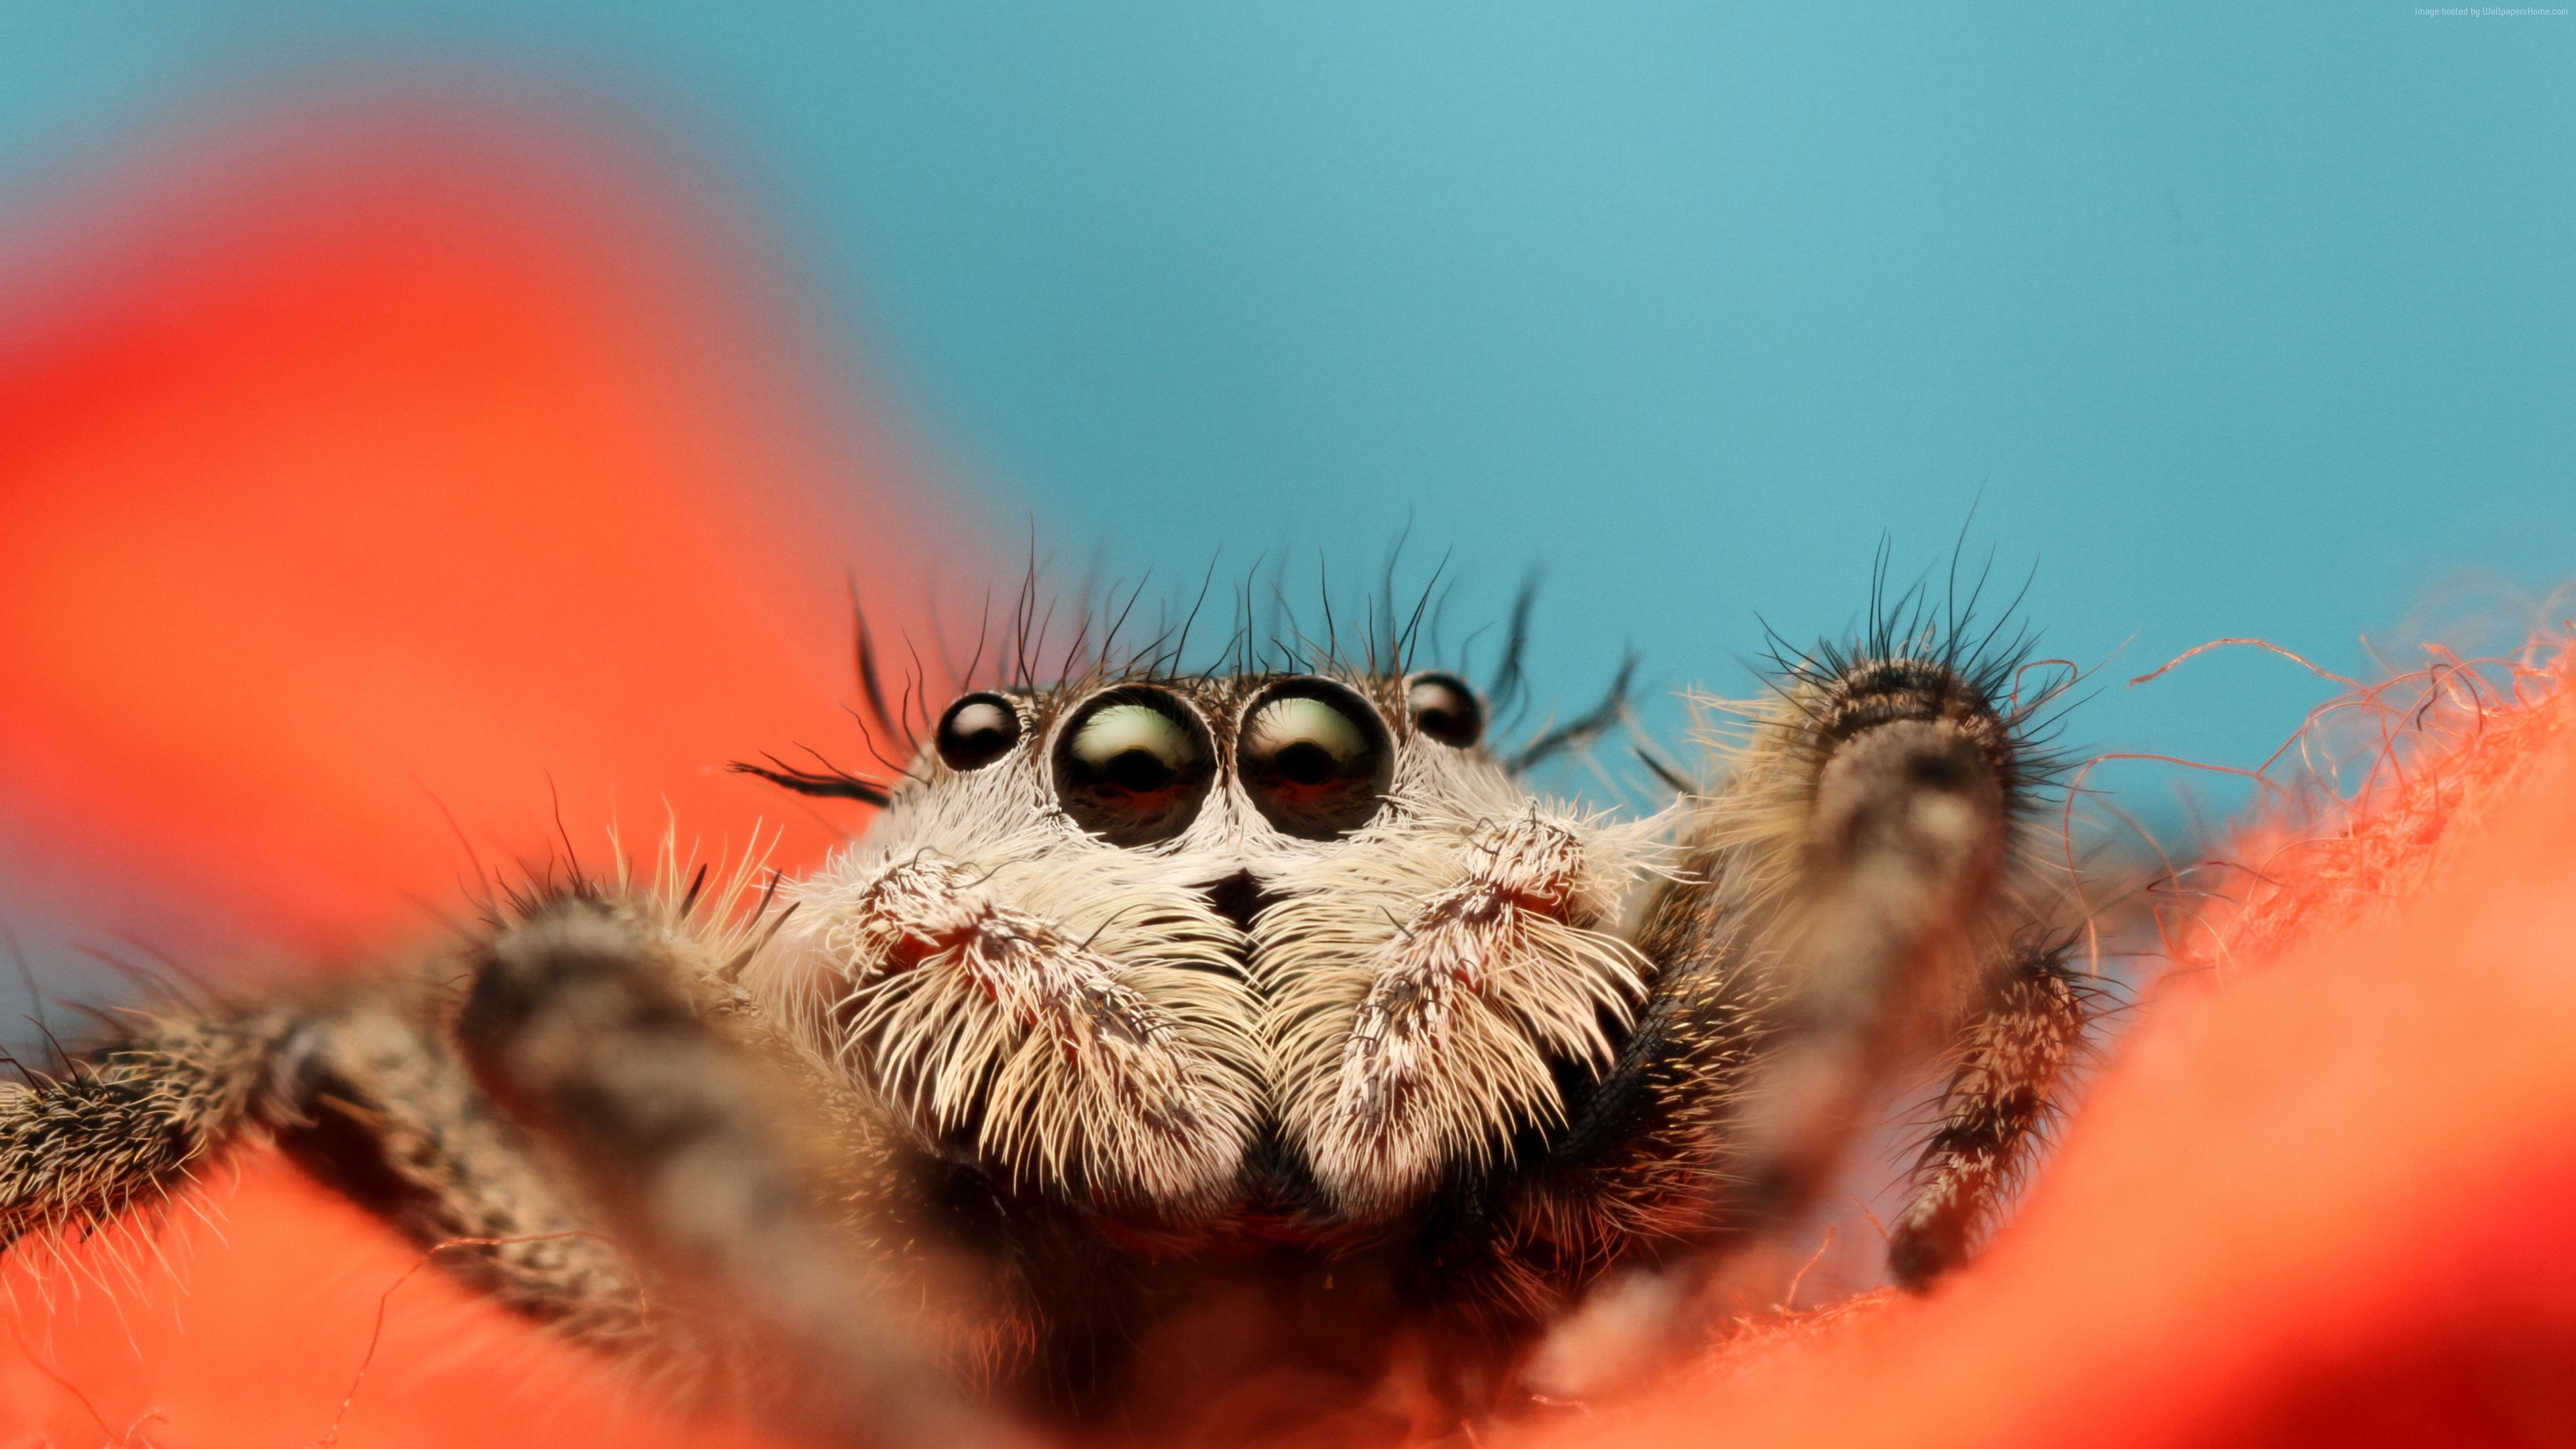 Wallpaper Jumping Spider, 5k, 4k wallpaper, 8k, macro, black, eyes, blue, orange, insects, cute, arachnid, Animals